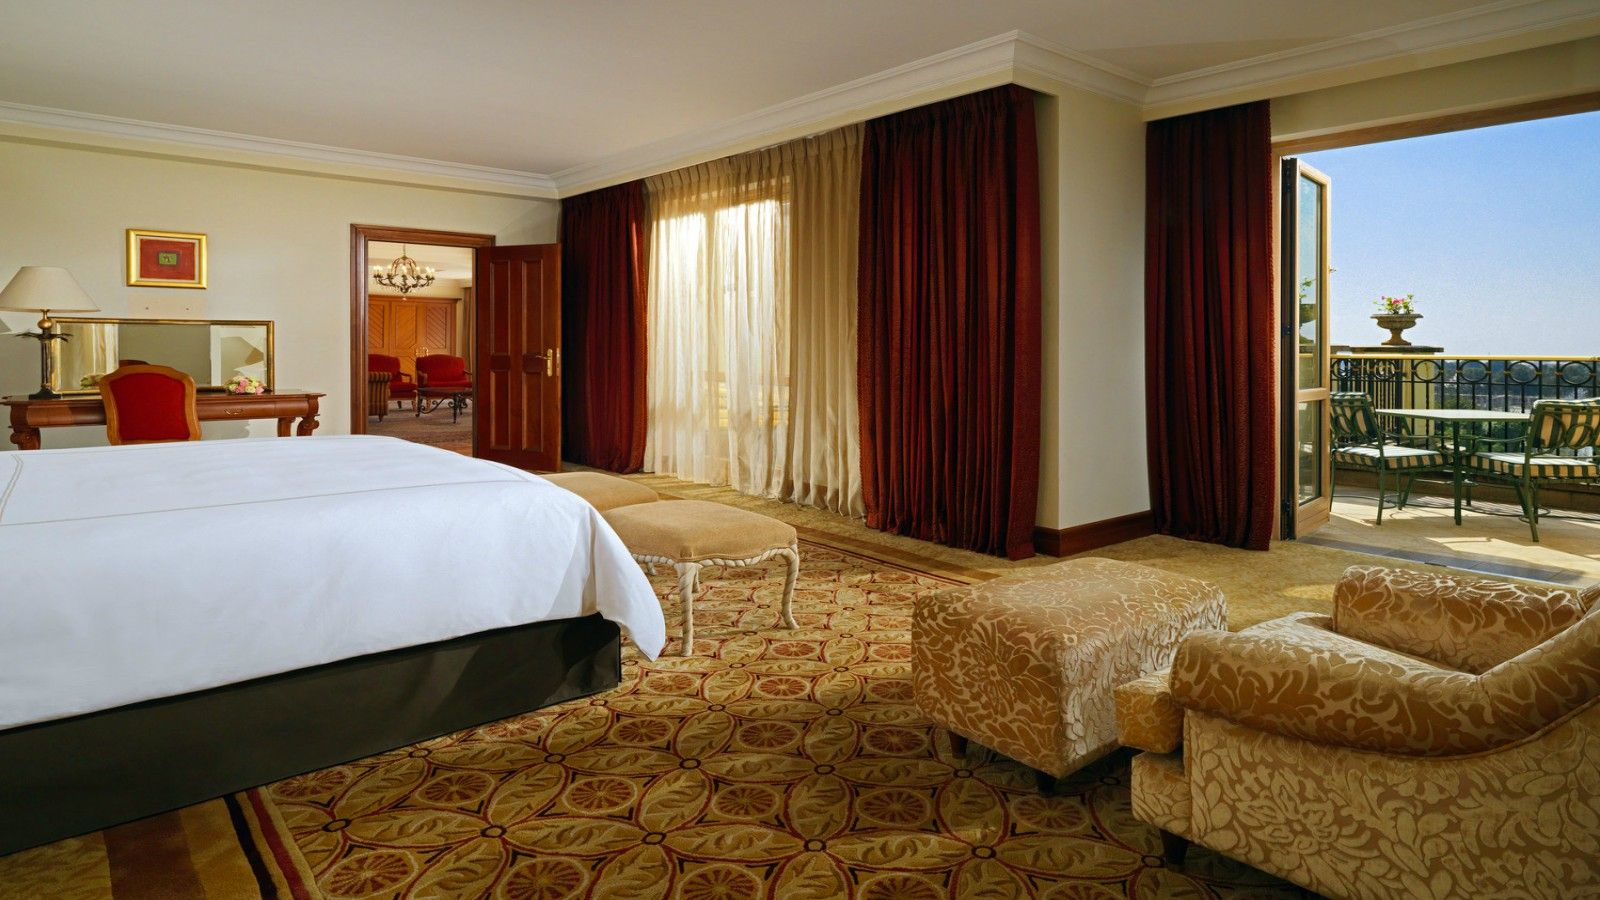 Executive Suite spacious bedroom with private balcony